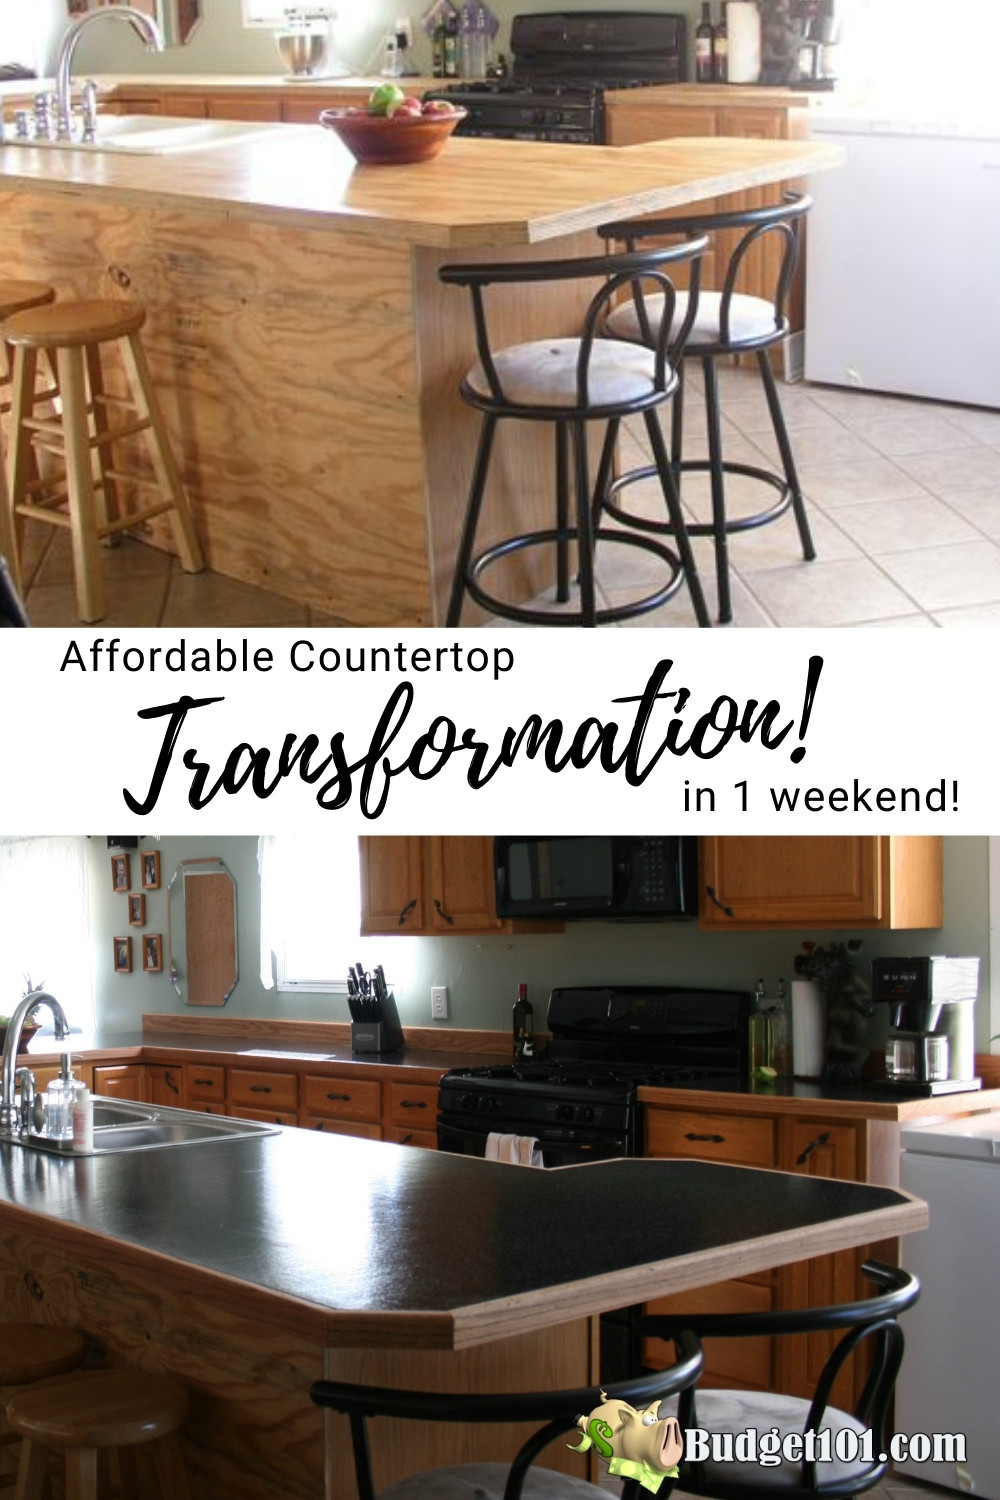 If you're looking for an affordable way to make a huge improvement in the look and feel of your kitchen, read on. We share how we transformed our kitchen countertops from plywood to granite using simple products that cost less than $300 total! #Budget101 #DIY #CountertopTransformation #KitchenMakeover #Remodel #ChicRemodel #DirtCheap